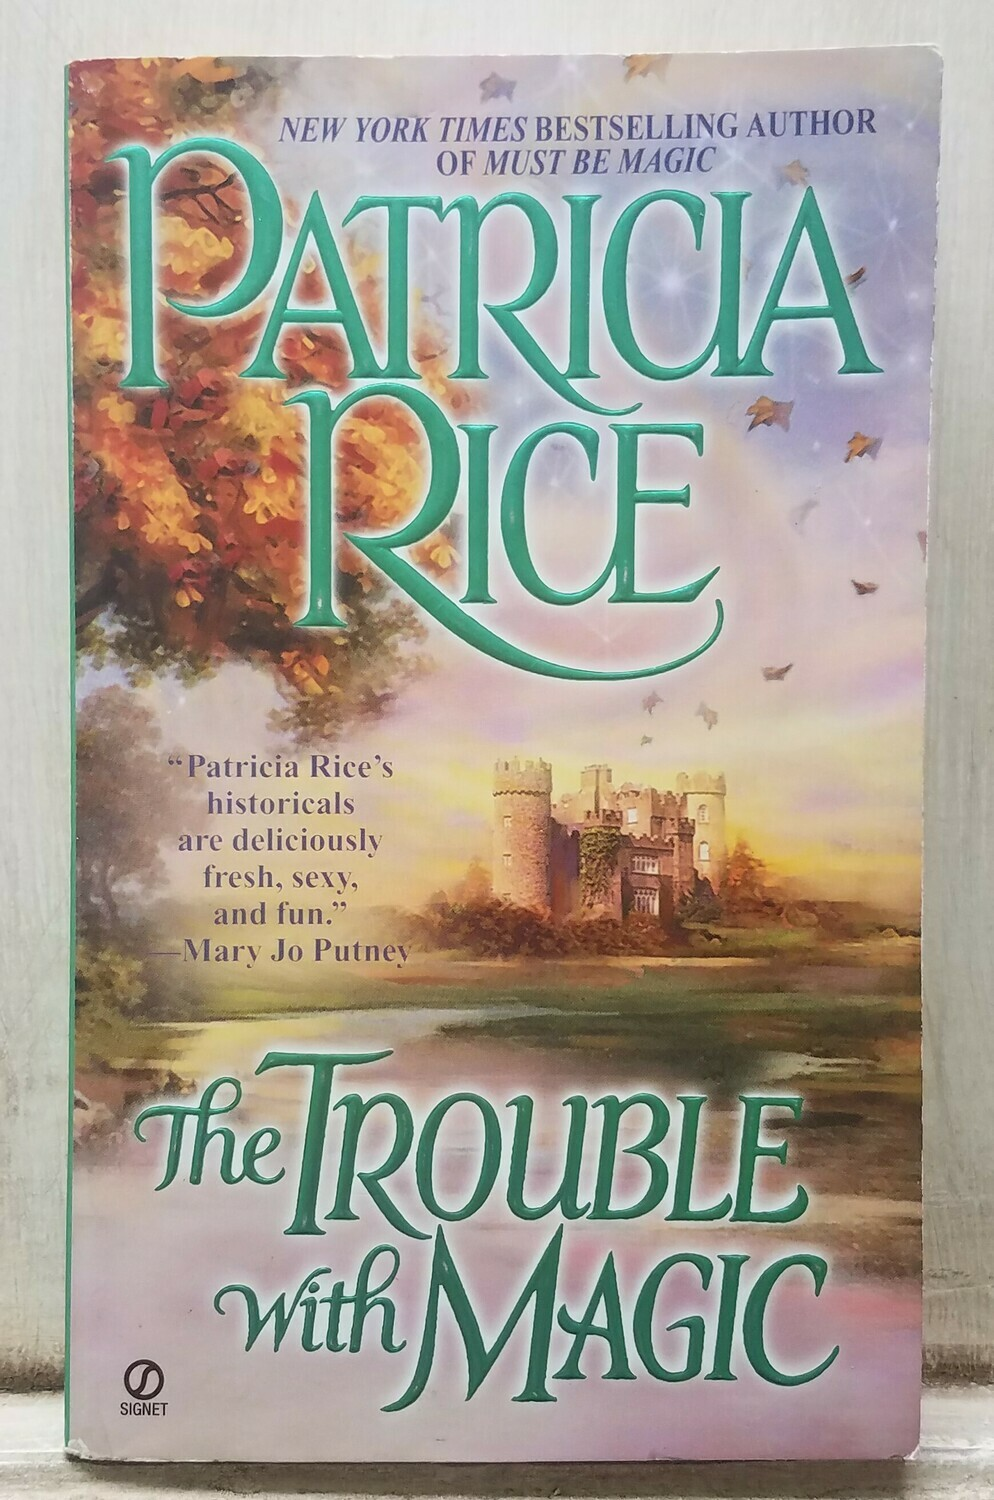 The Trouble with Magic by Patricia Rice